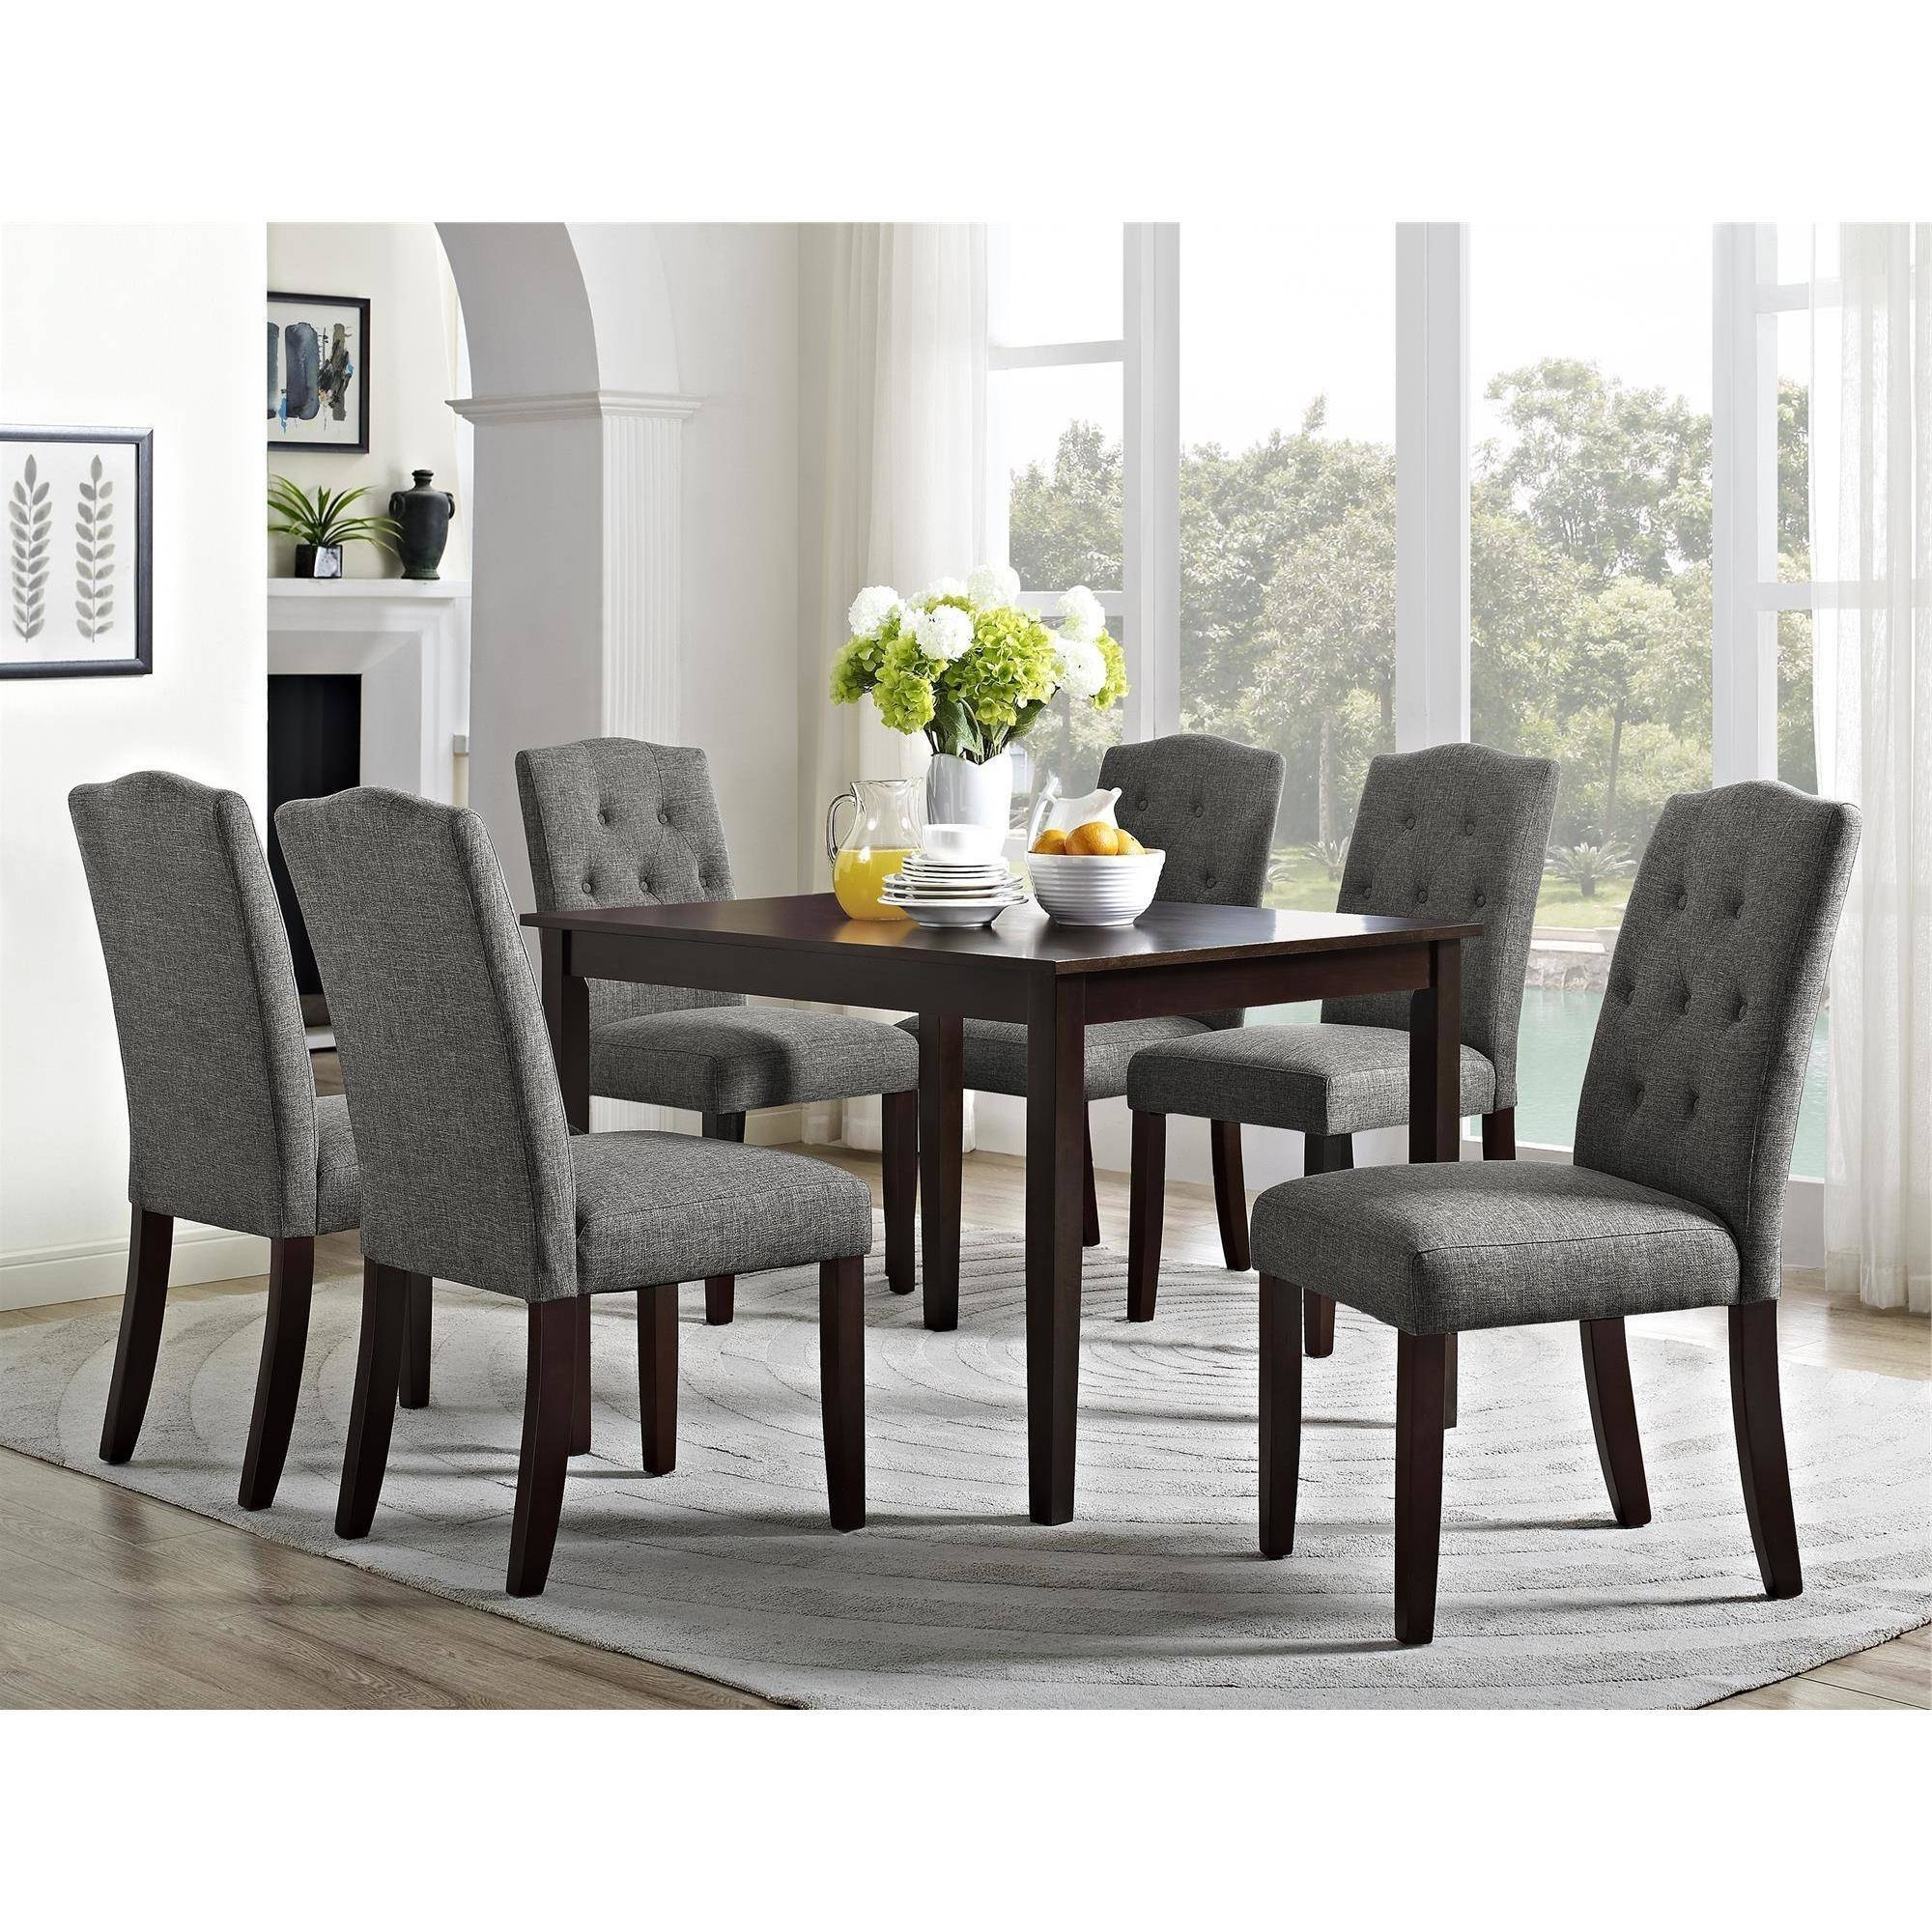 Probably Terrific Best Dining Table With Gray Chairs Picture Throughout Well Liked Jaxon Grey 5 Piece Extension Counter Sets With Wood Stools (Gallery 25 of 25)